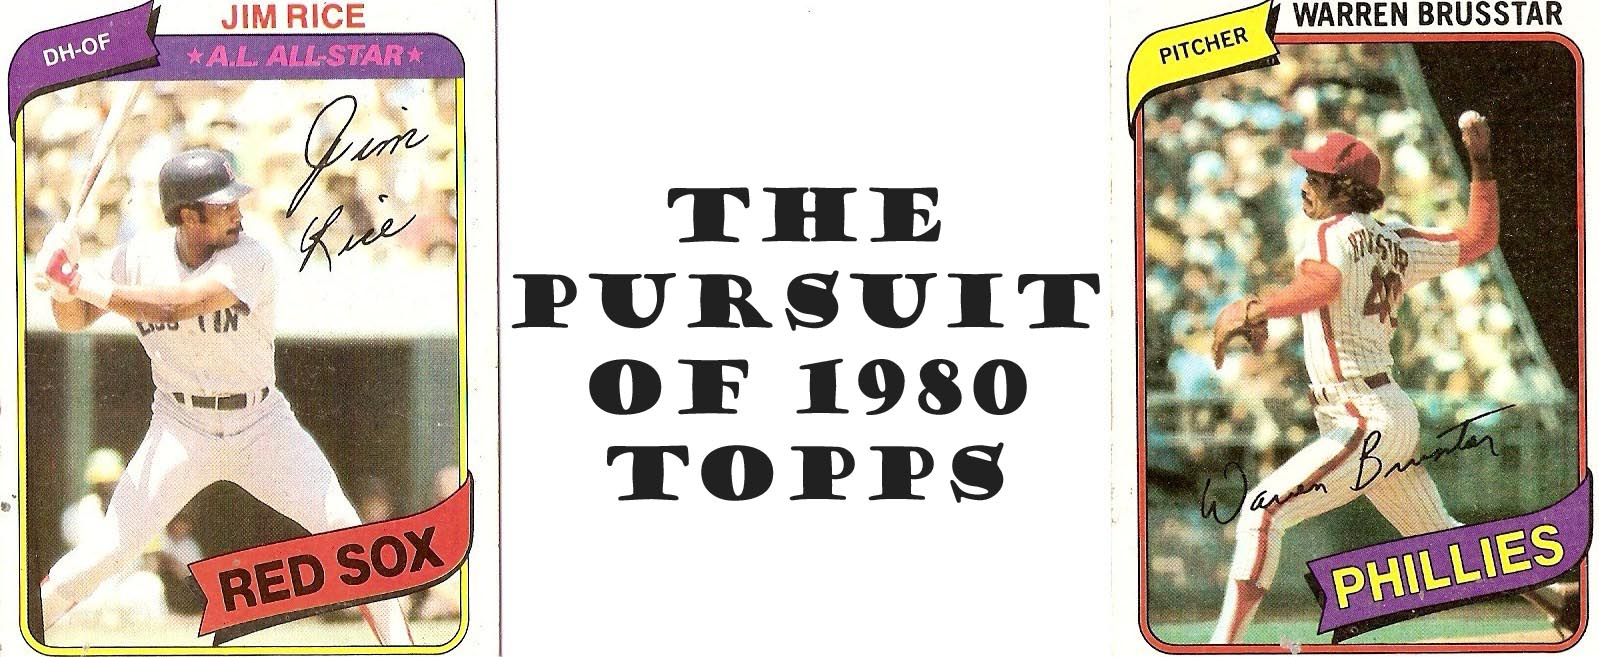 The pursuit of 1980 Topps